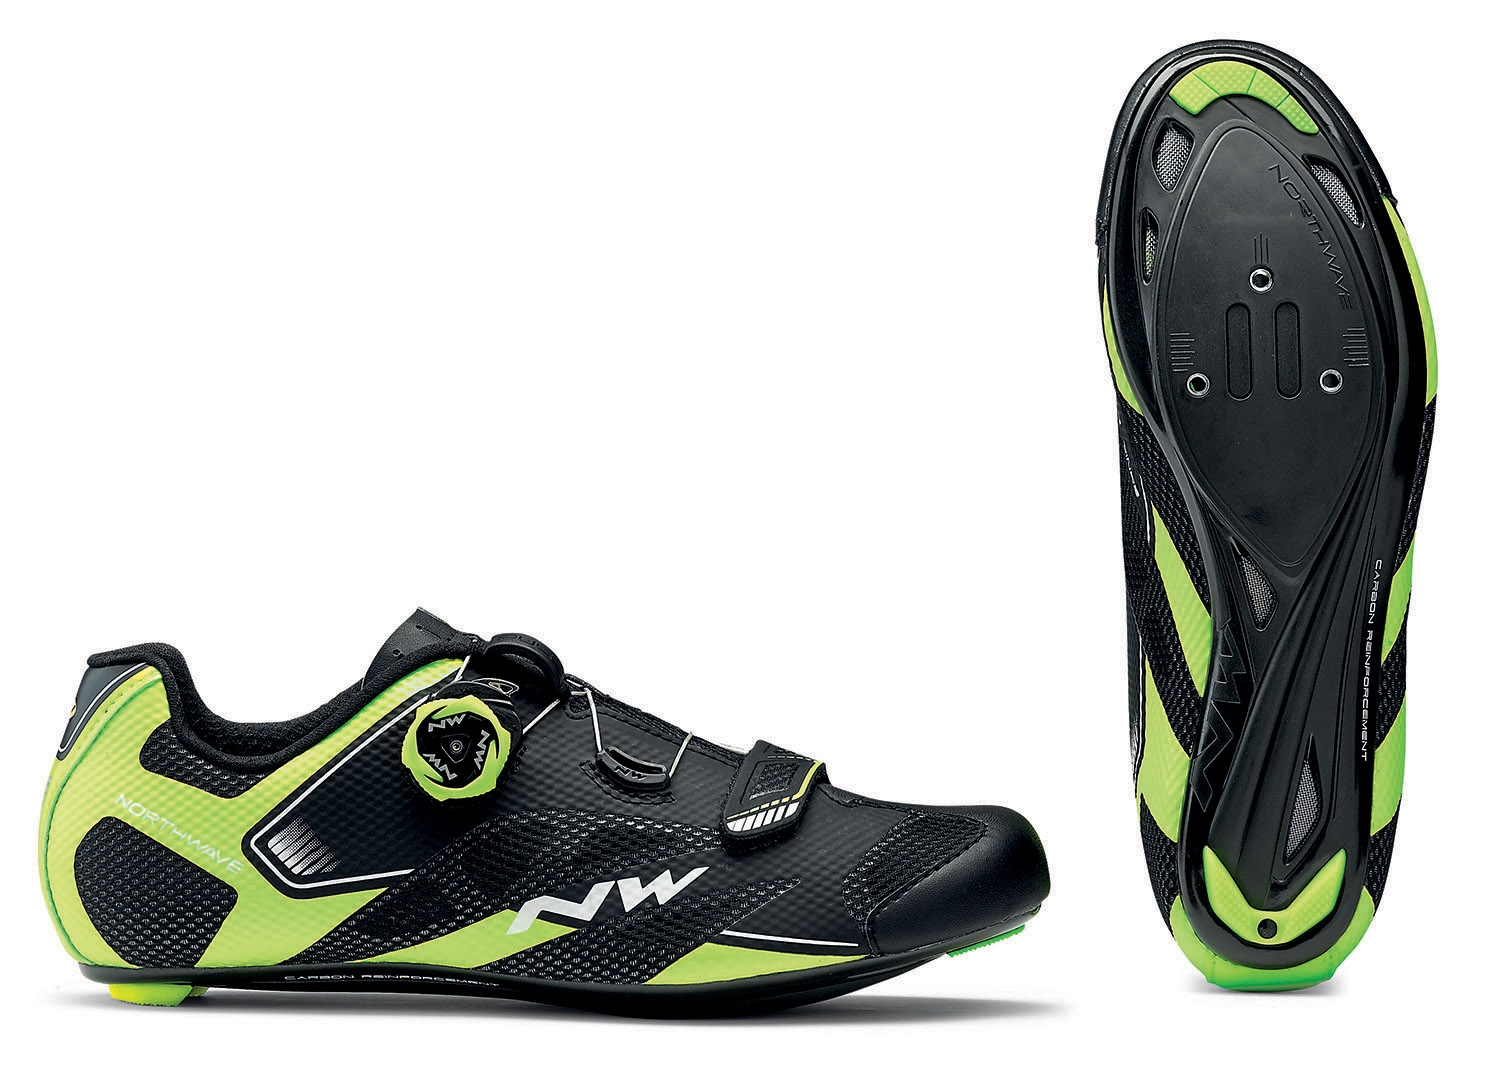 NORTHWAVE Man road cycling shoes SONIC 2 PLUS black/yellow fluo/white